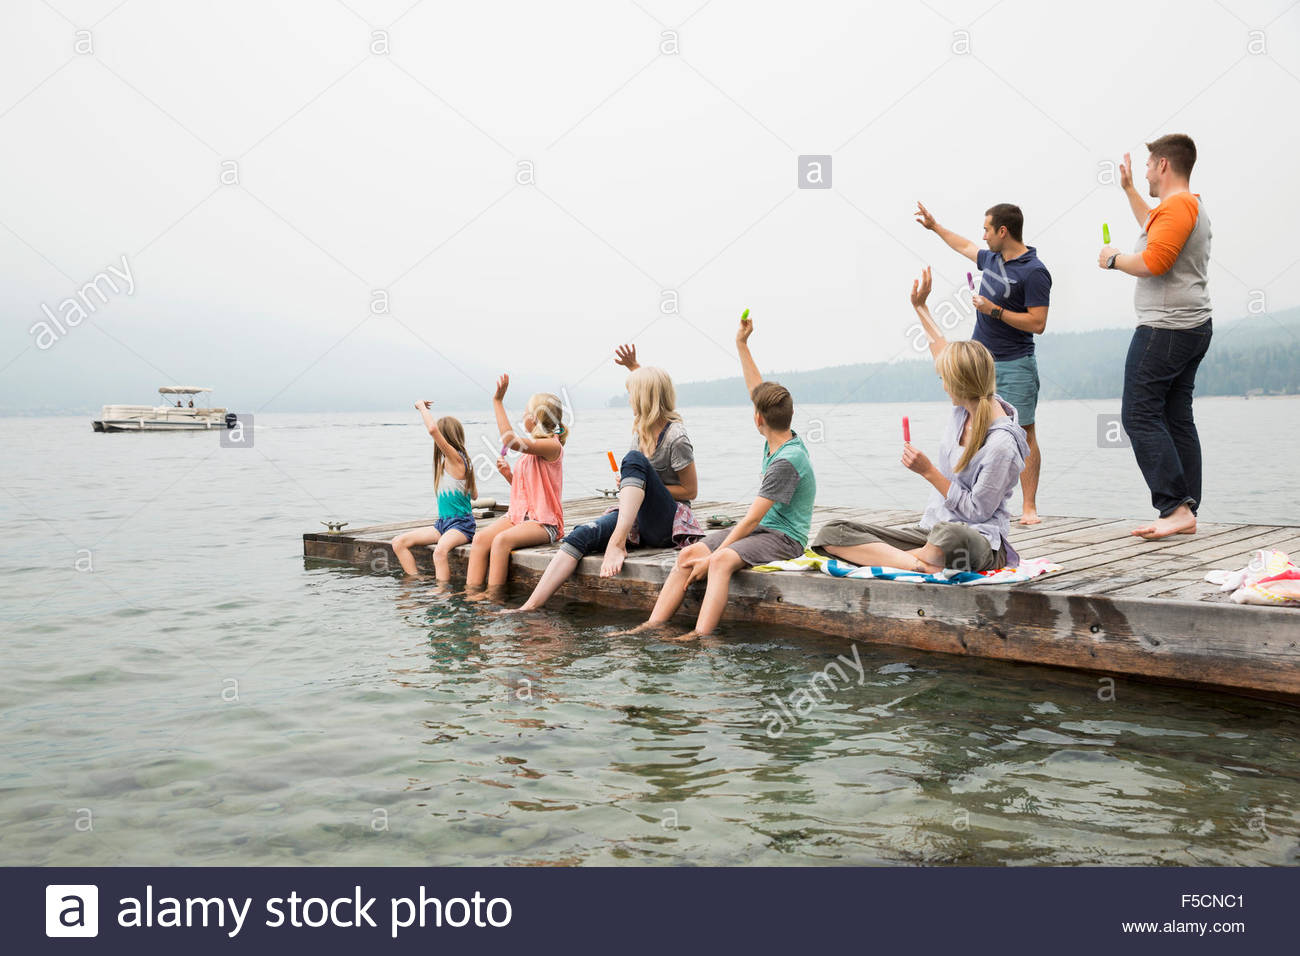 Family on dock waving to boat on lake - Stock Image